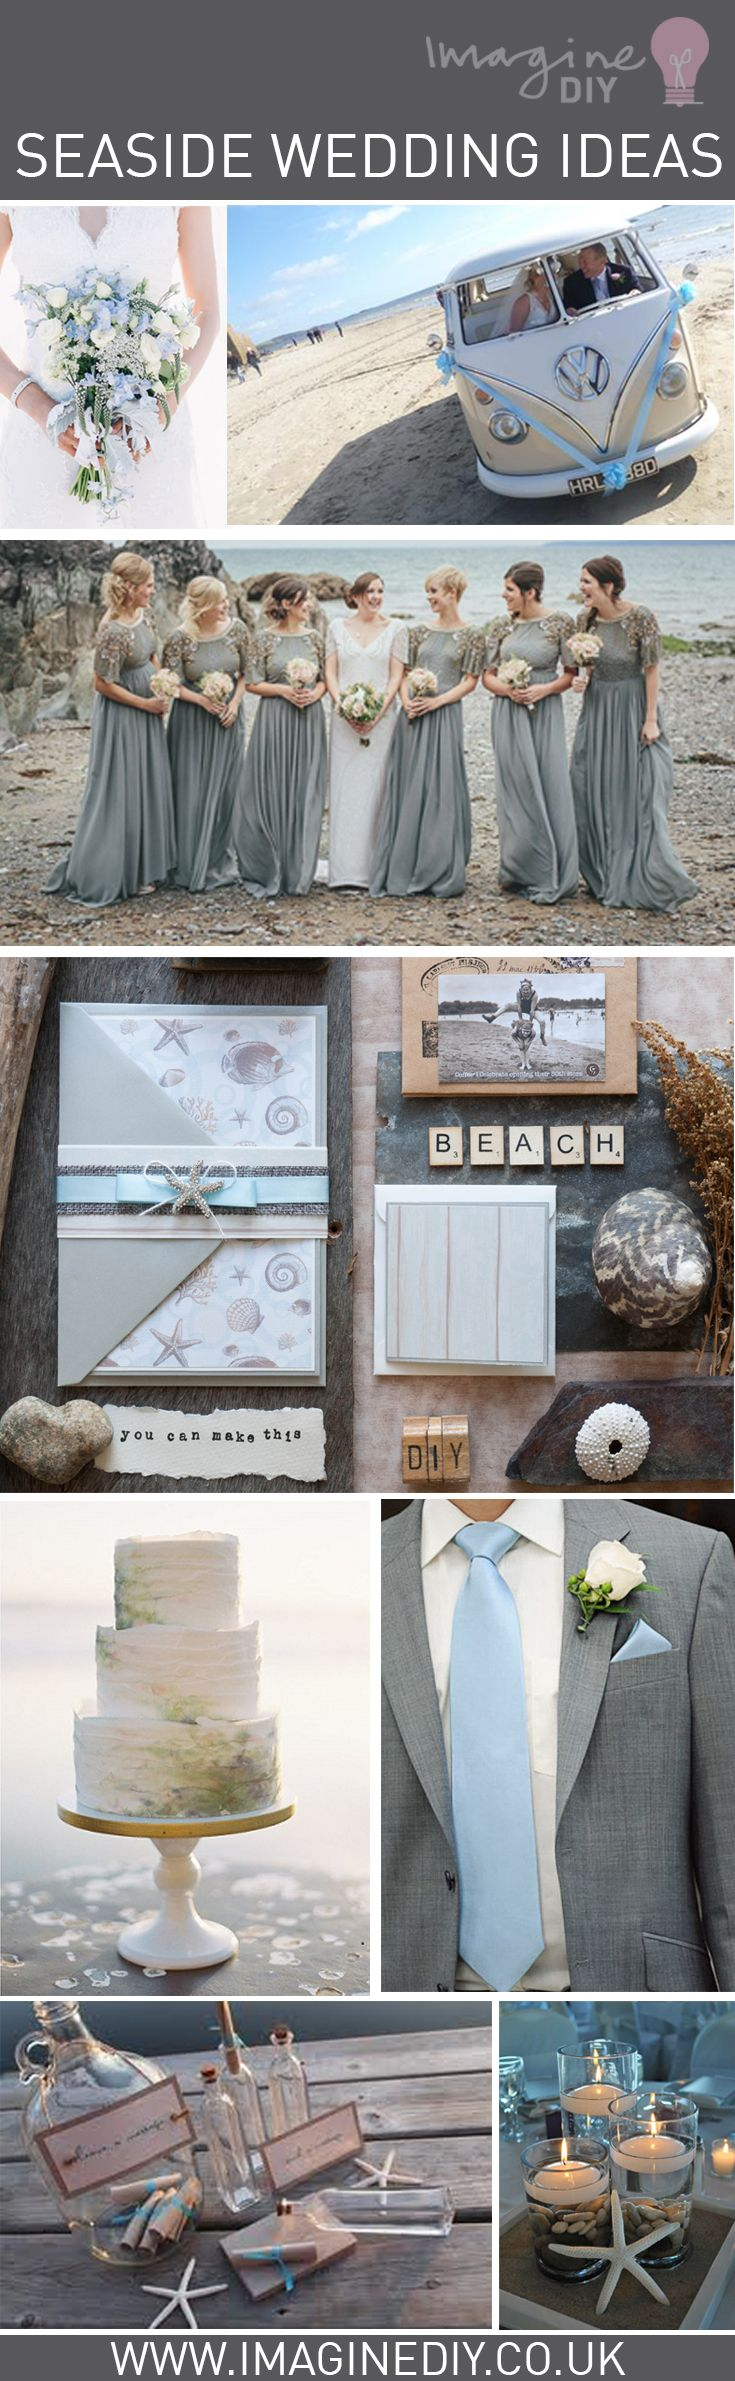 Seaside wedding ideas diy beach blue grey theme